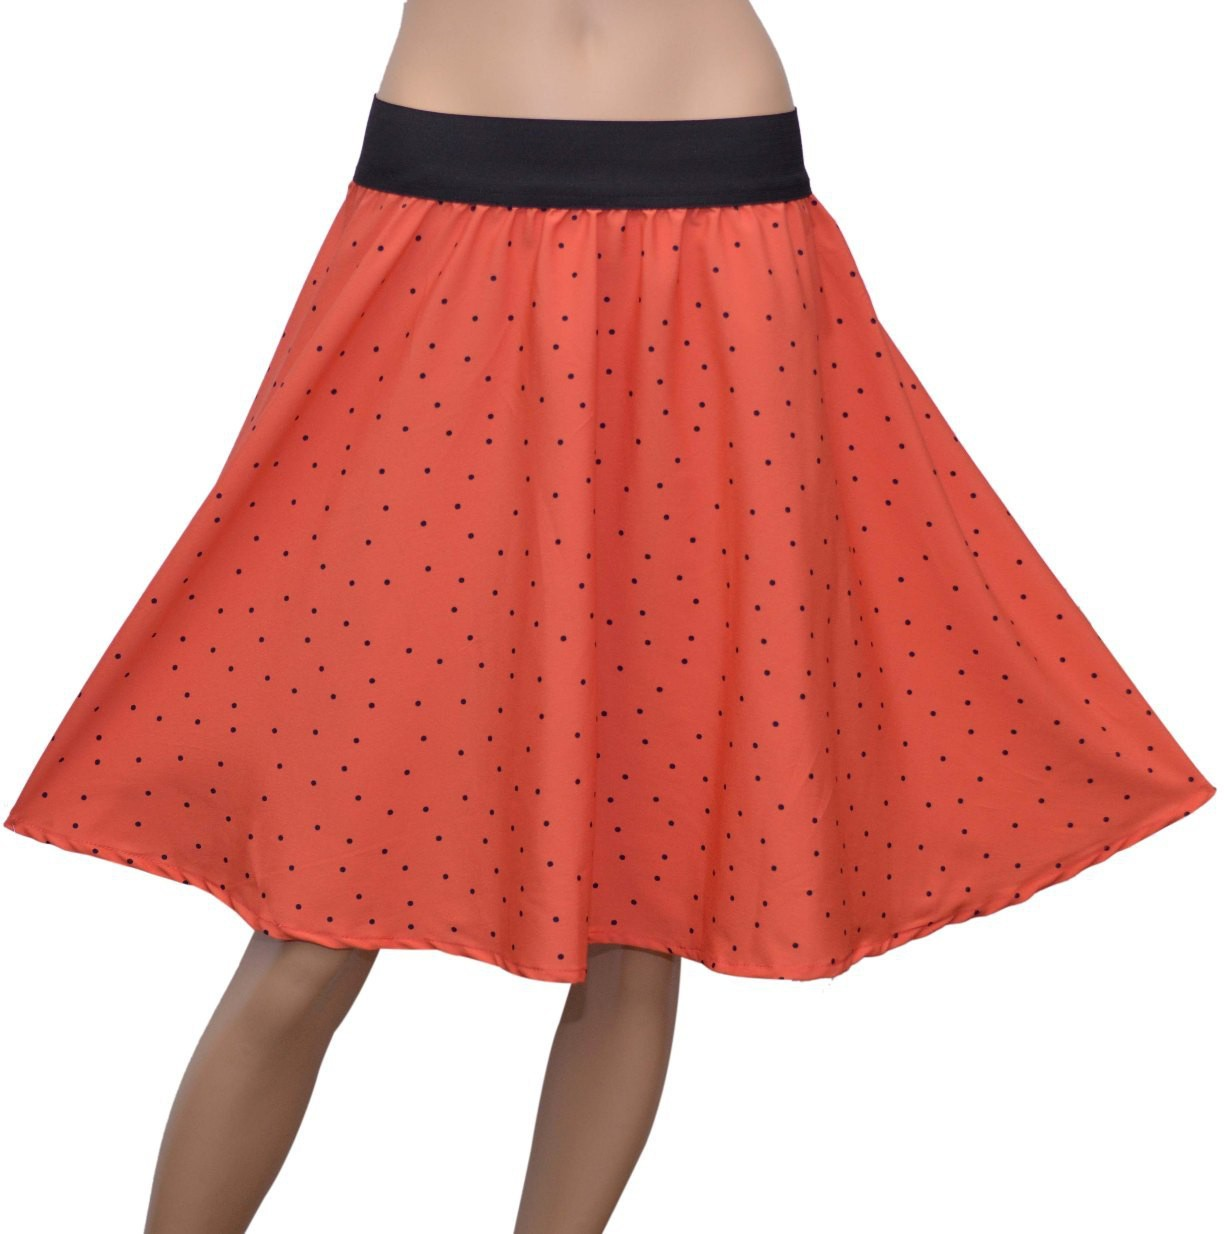 GraceDiva Printed Womens Gathered Pink, Black Skirt